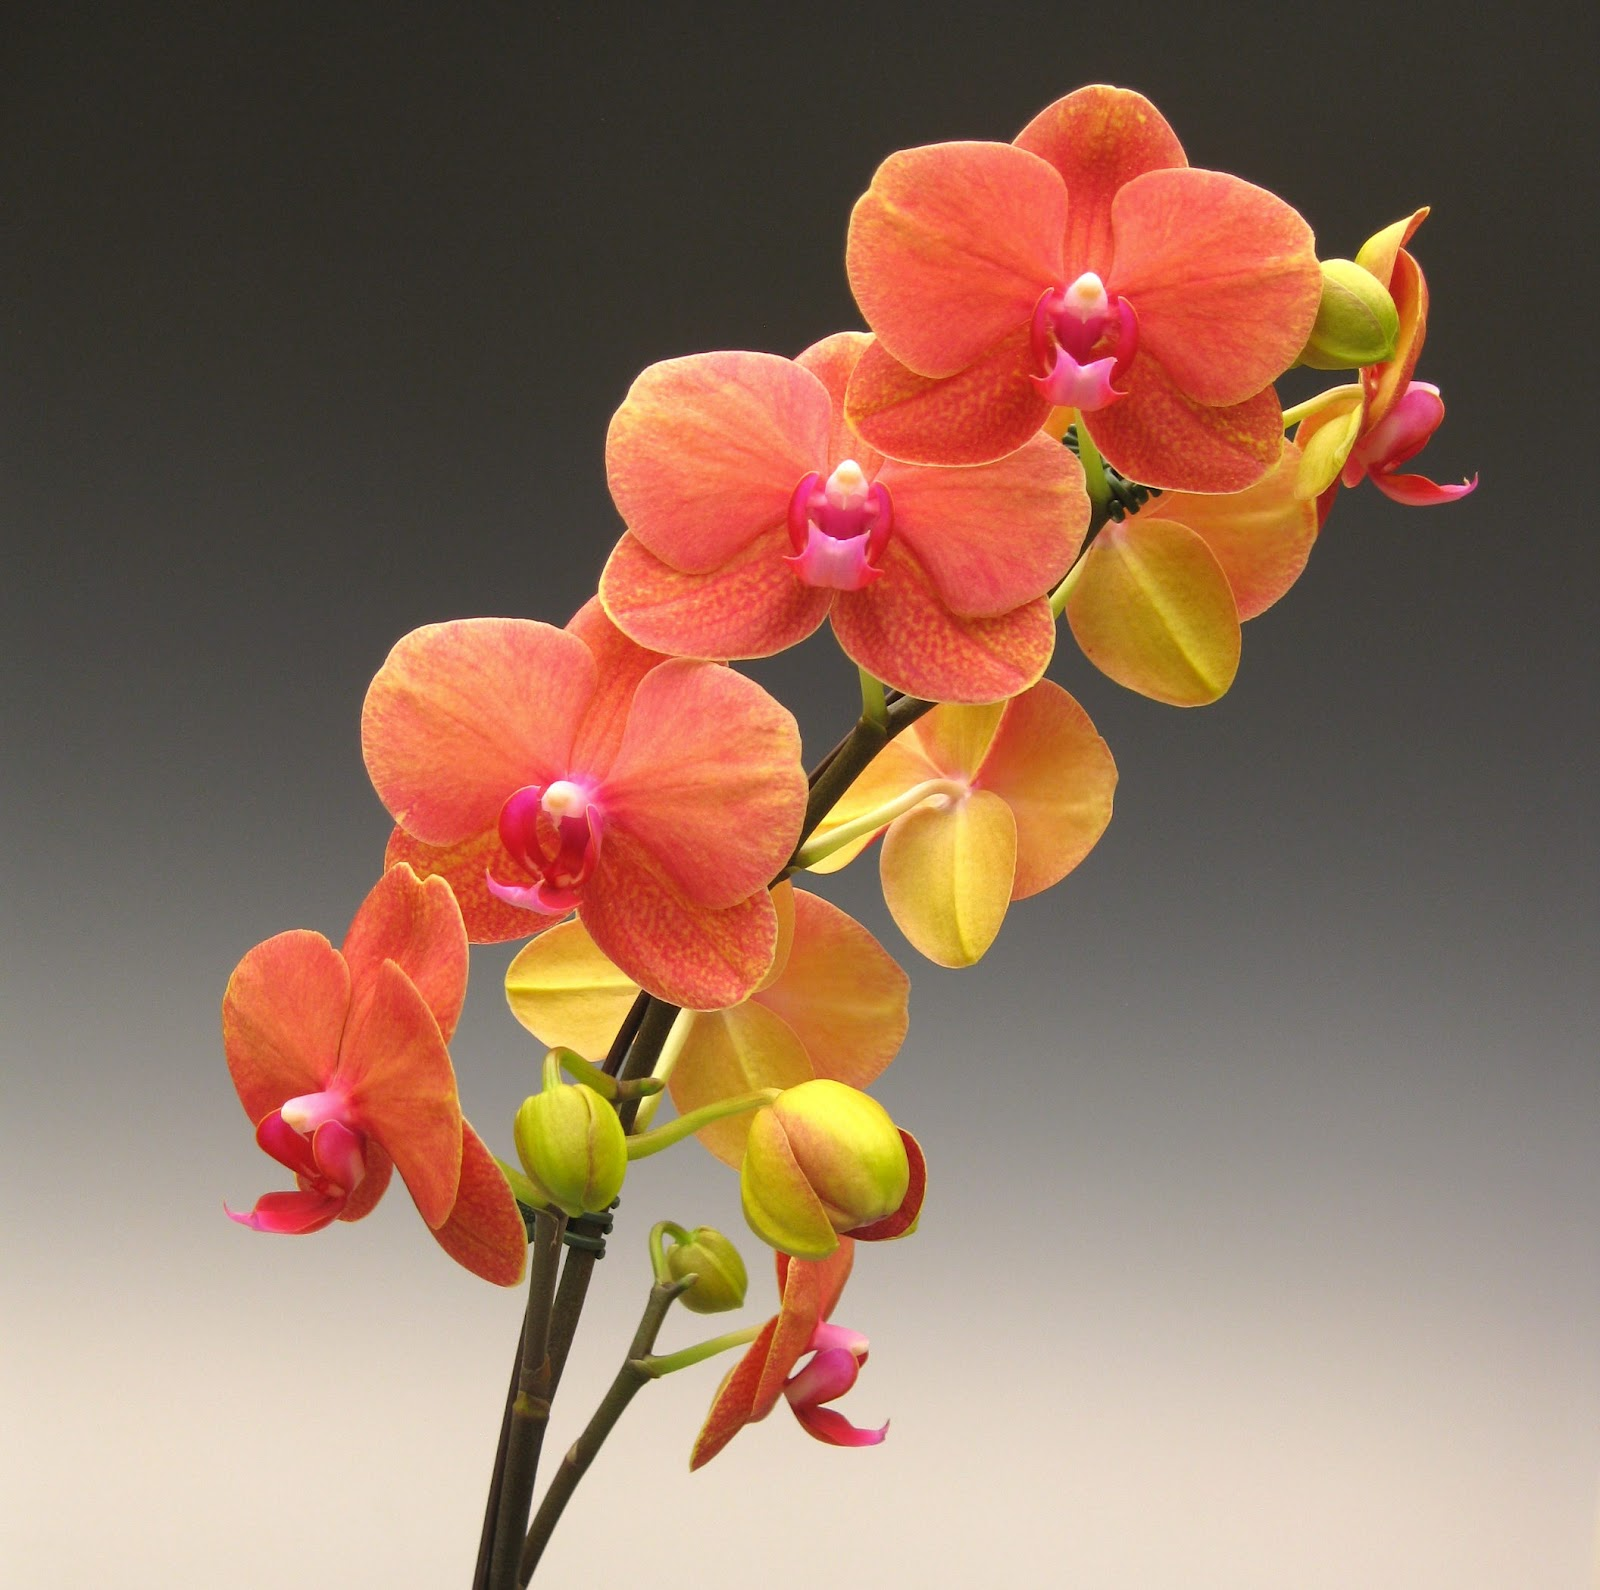 Orange Mini Cymbidium Orchids - Orchids - Types of Flowers ...